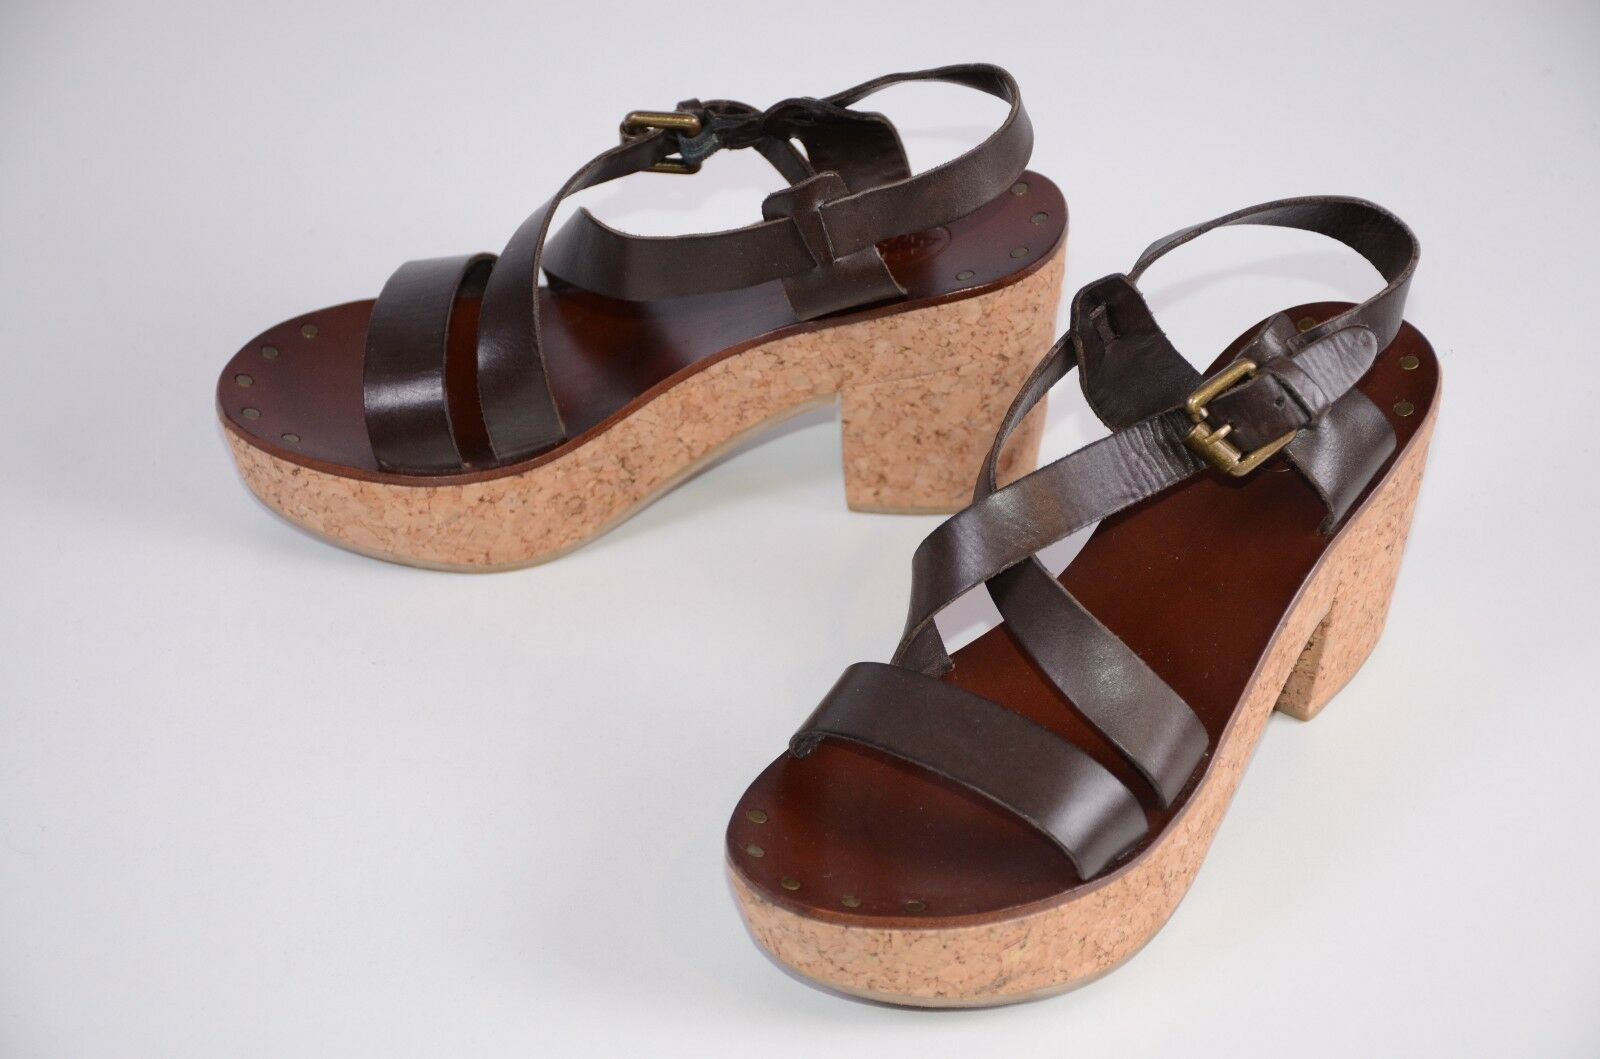 ASH Women's Sandals Size 38 Brown Leather Cork Cuban 7.5 US Casual Fun Vacation